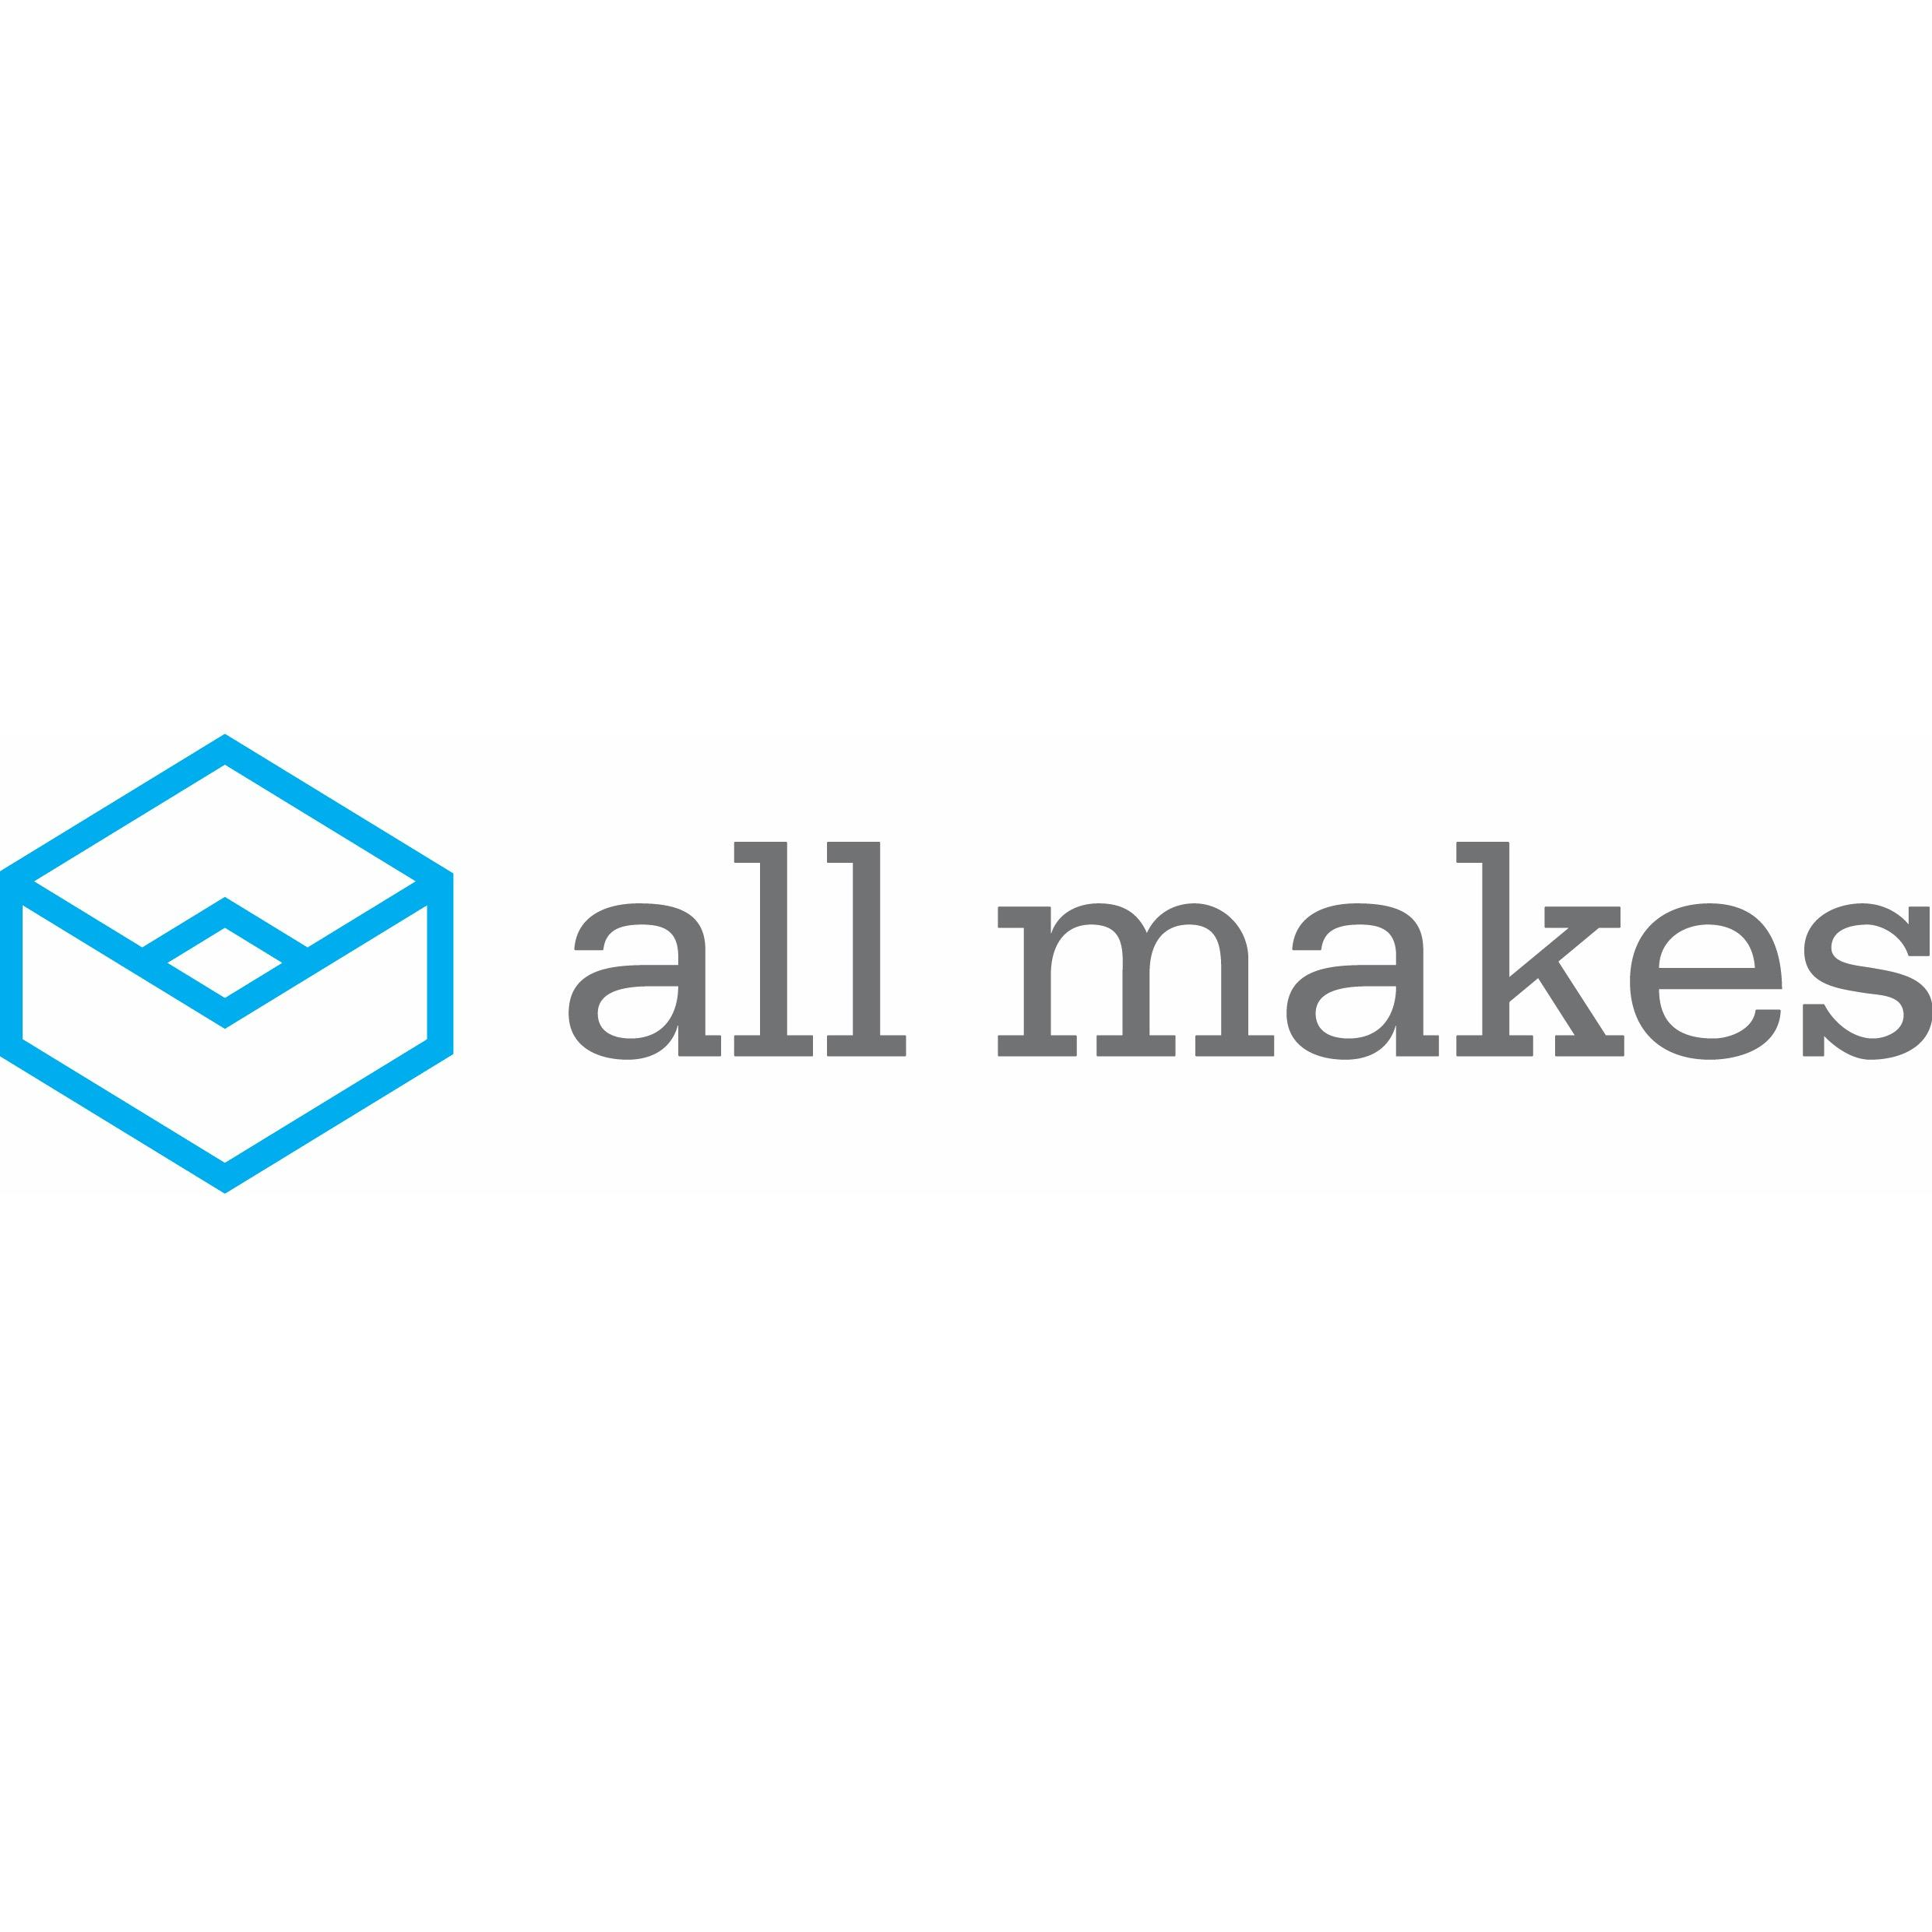 All Makes